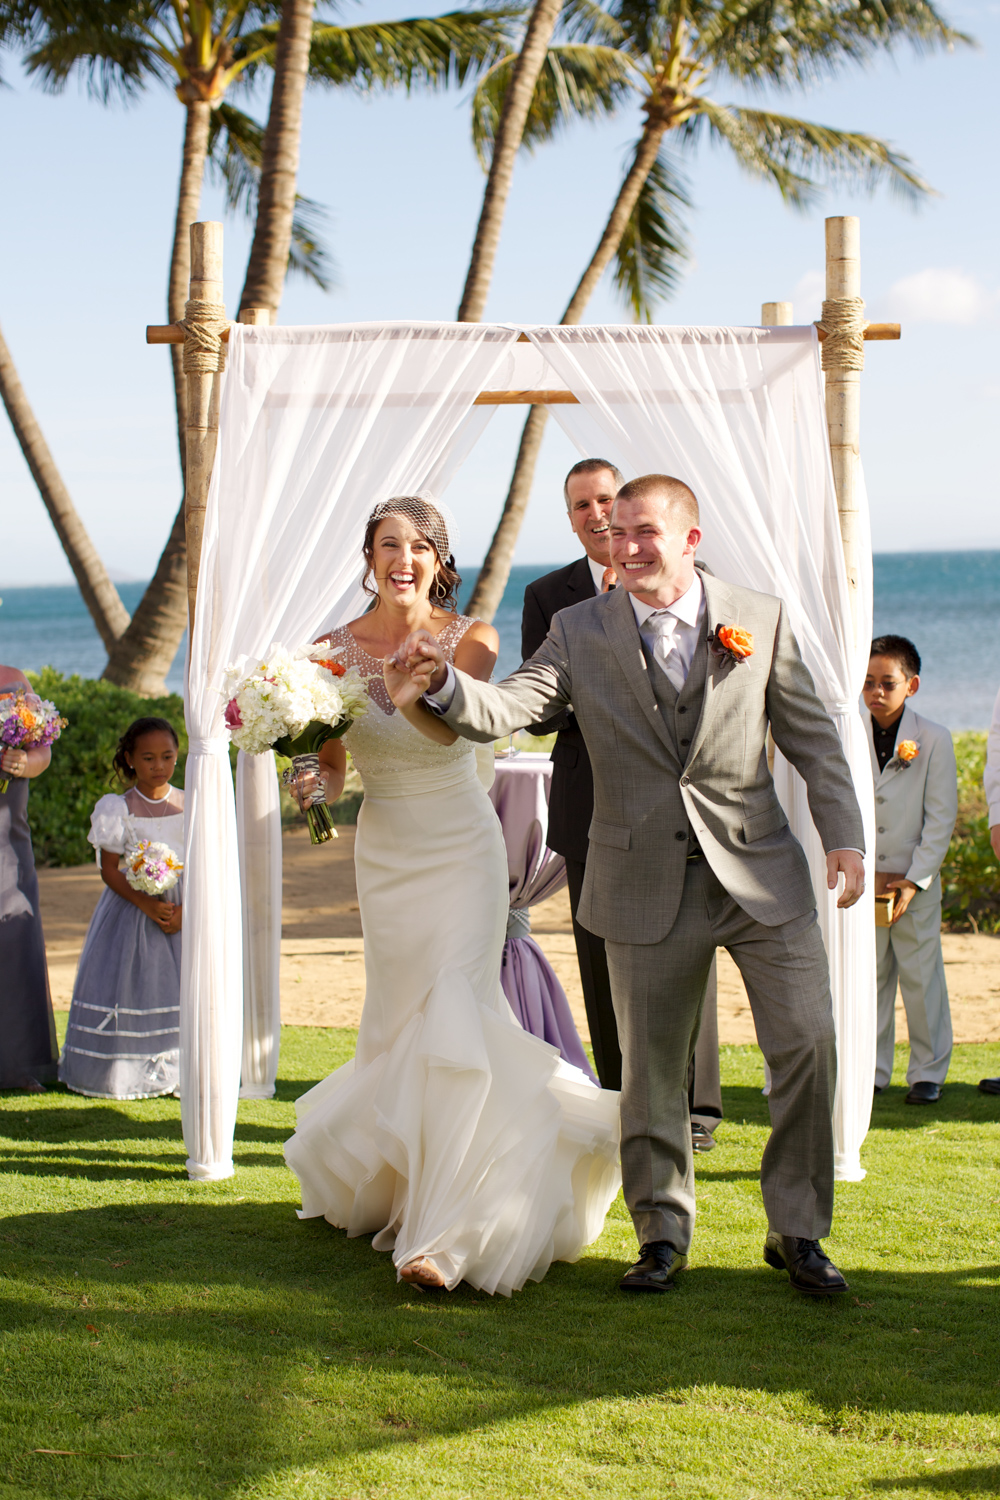 bliss-maui-wedding-sugar-beach-events-anna-kim-photography-katelyn-eric-16.jpg